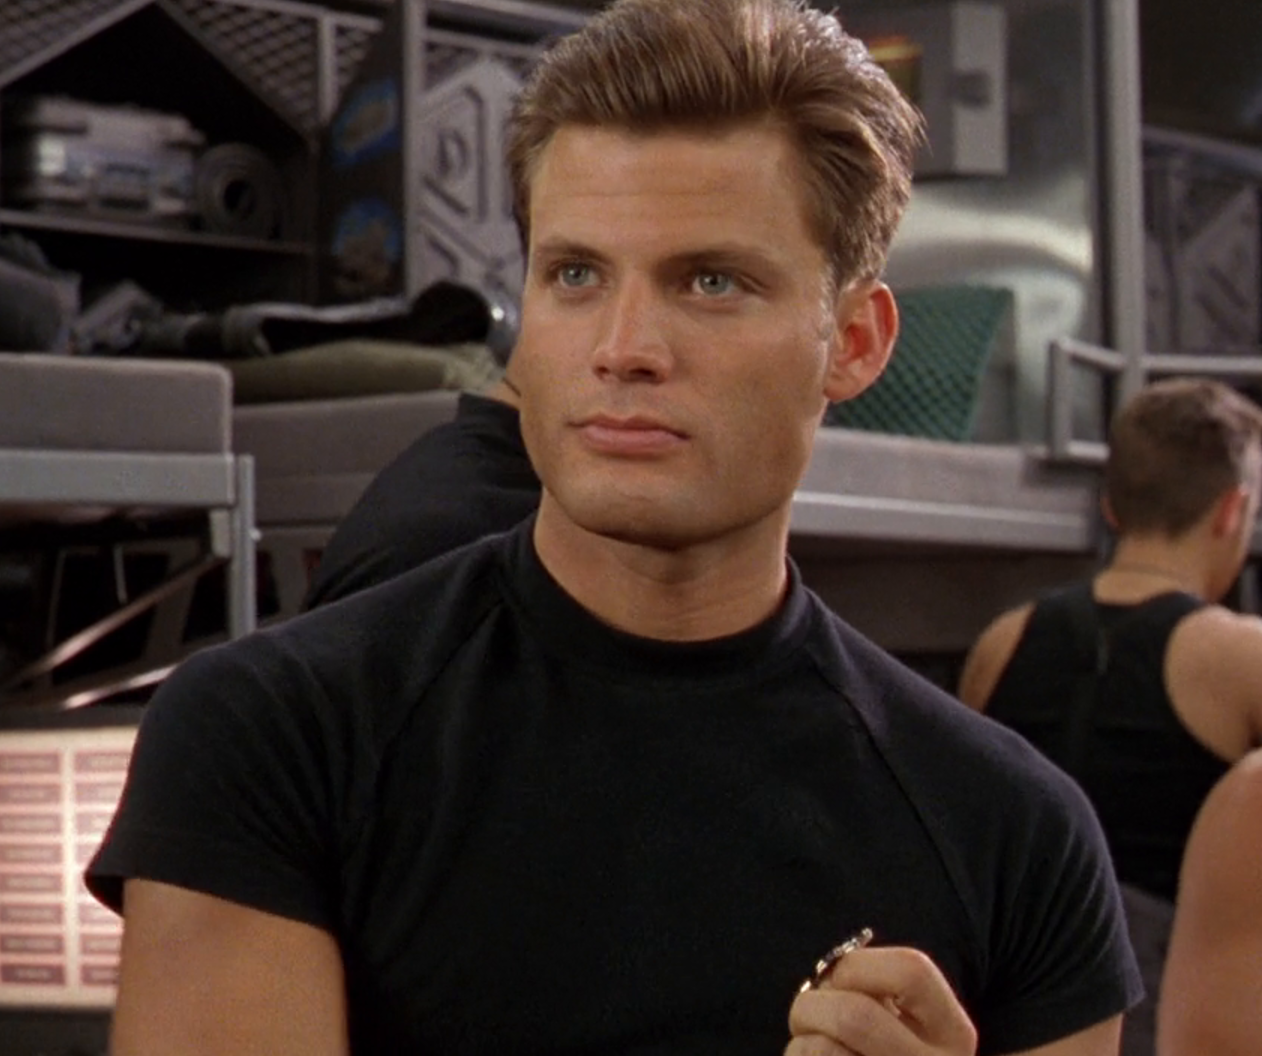 sphe starship troopers 1997 Full Image GalleryBackground en US 1622457738953. RI e1623241031233 25 Movie Heroes Who Were Actually Kind of the Villain